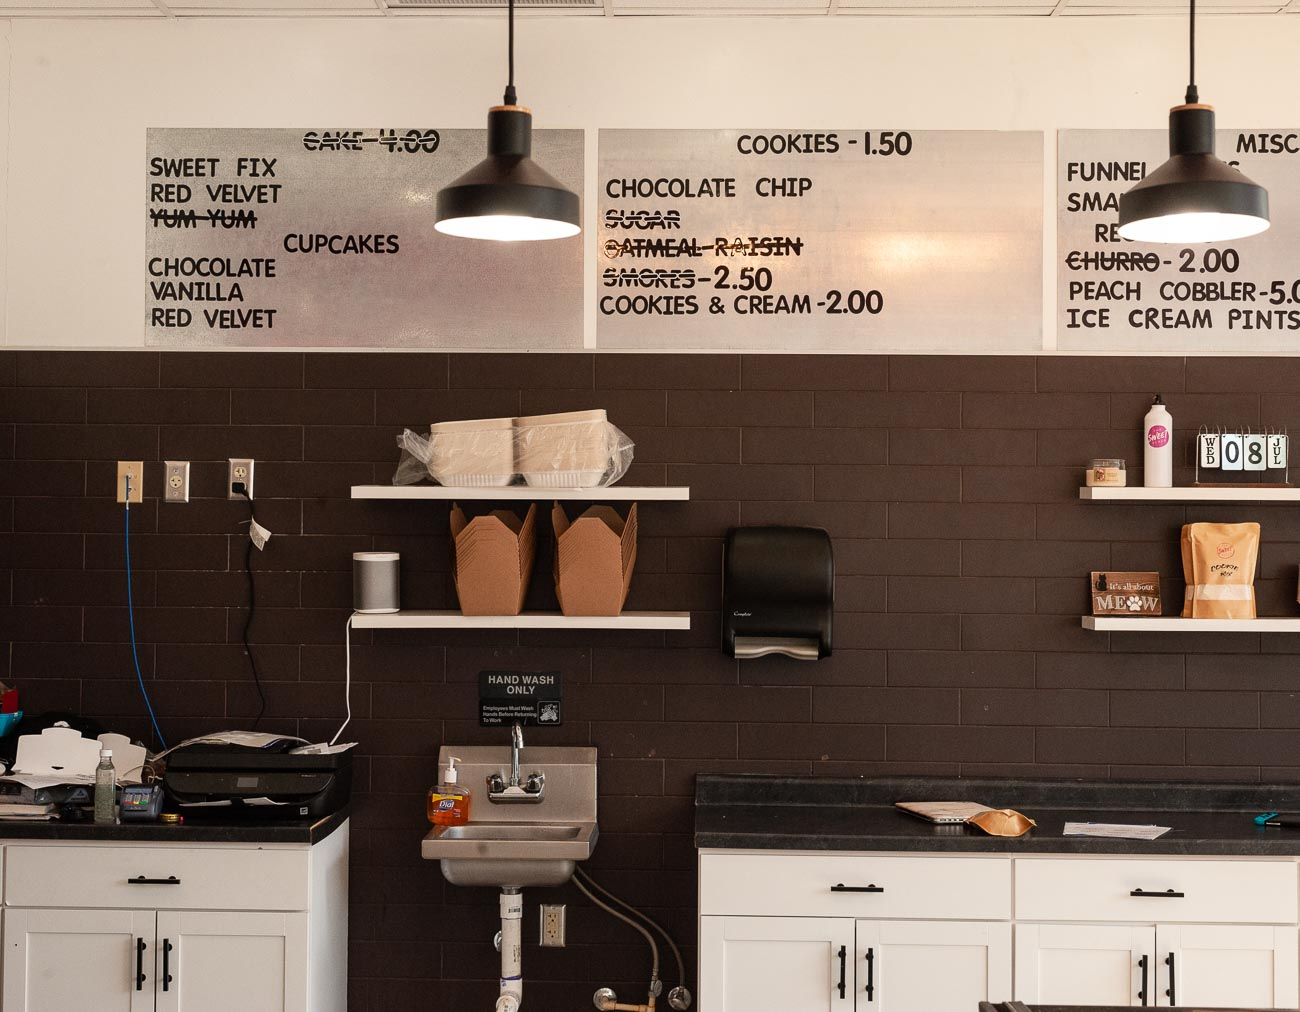 The Corryville bakery is typically open Wednesday through Sunday from 4 PM to midnight, but their current hours are Wednesday through Sunday from 5 PM to 10 PM. Indoor dining is unavailable, but pickup is offered and delivery through apps like UberEats & DoorDash. / Image: Kellie Coleman // Published: 8.5.20